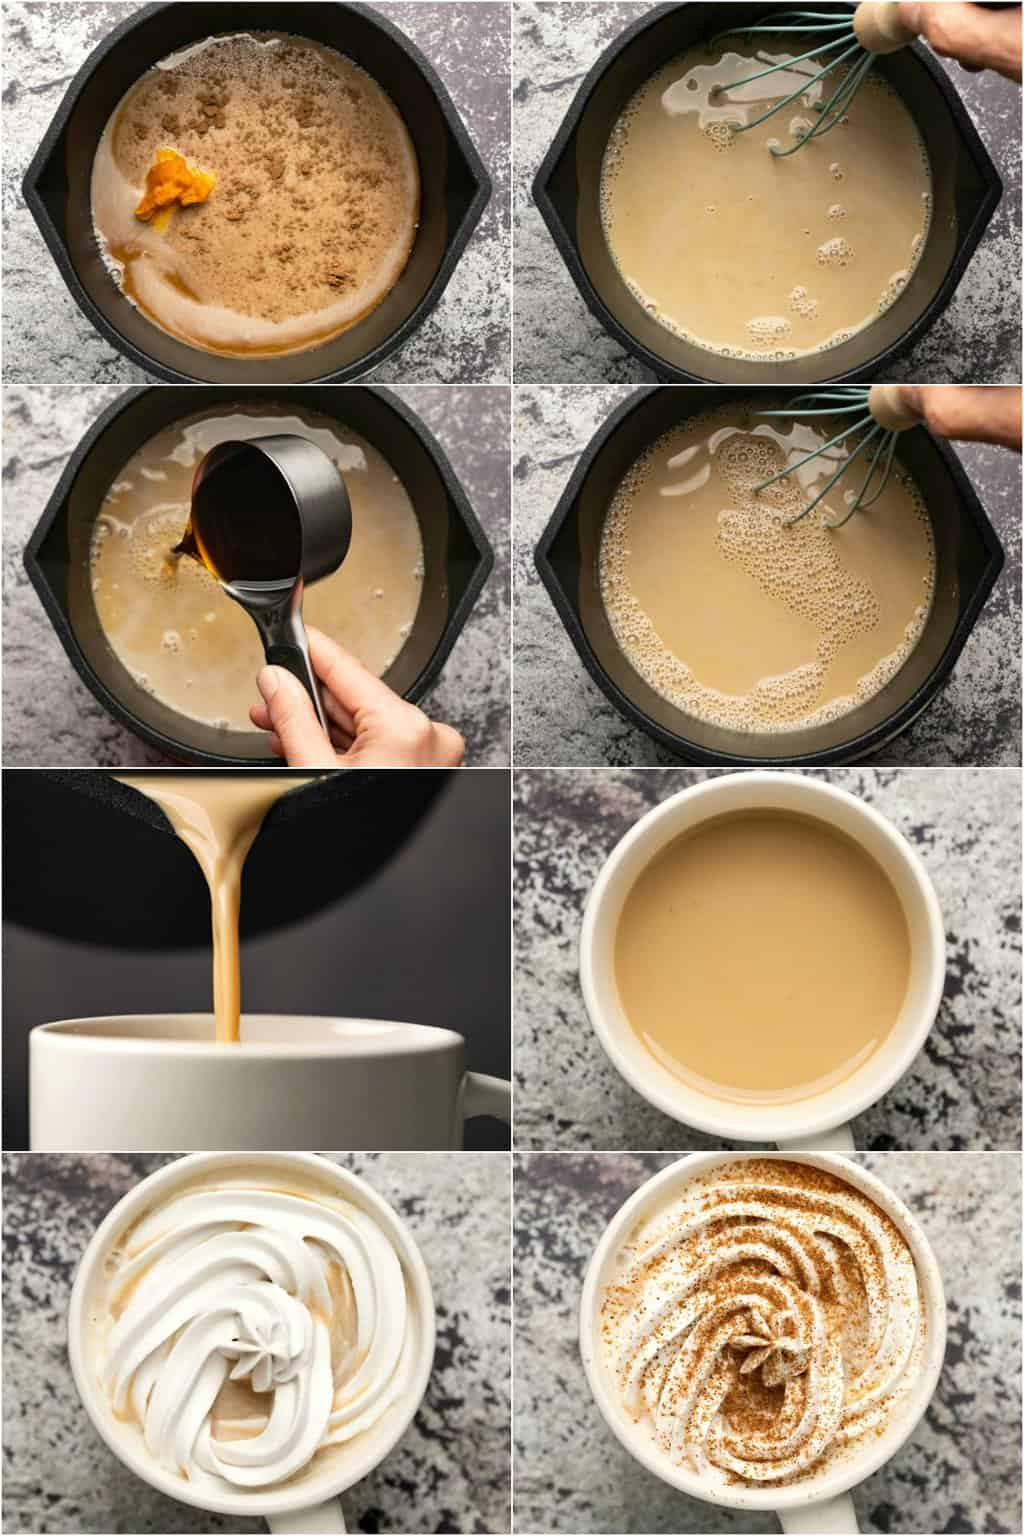 Step by step process photo collage of making a vegan pumpkin spice latte.